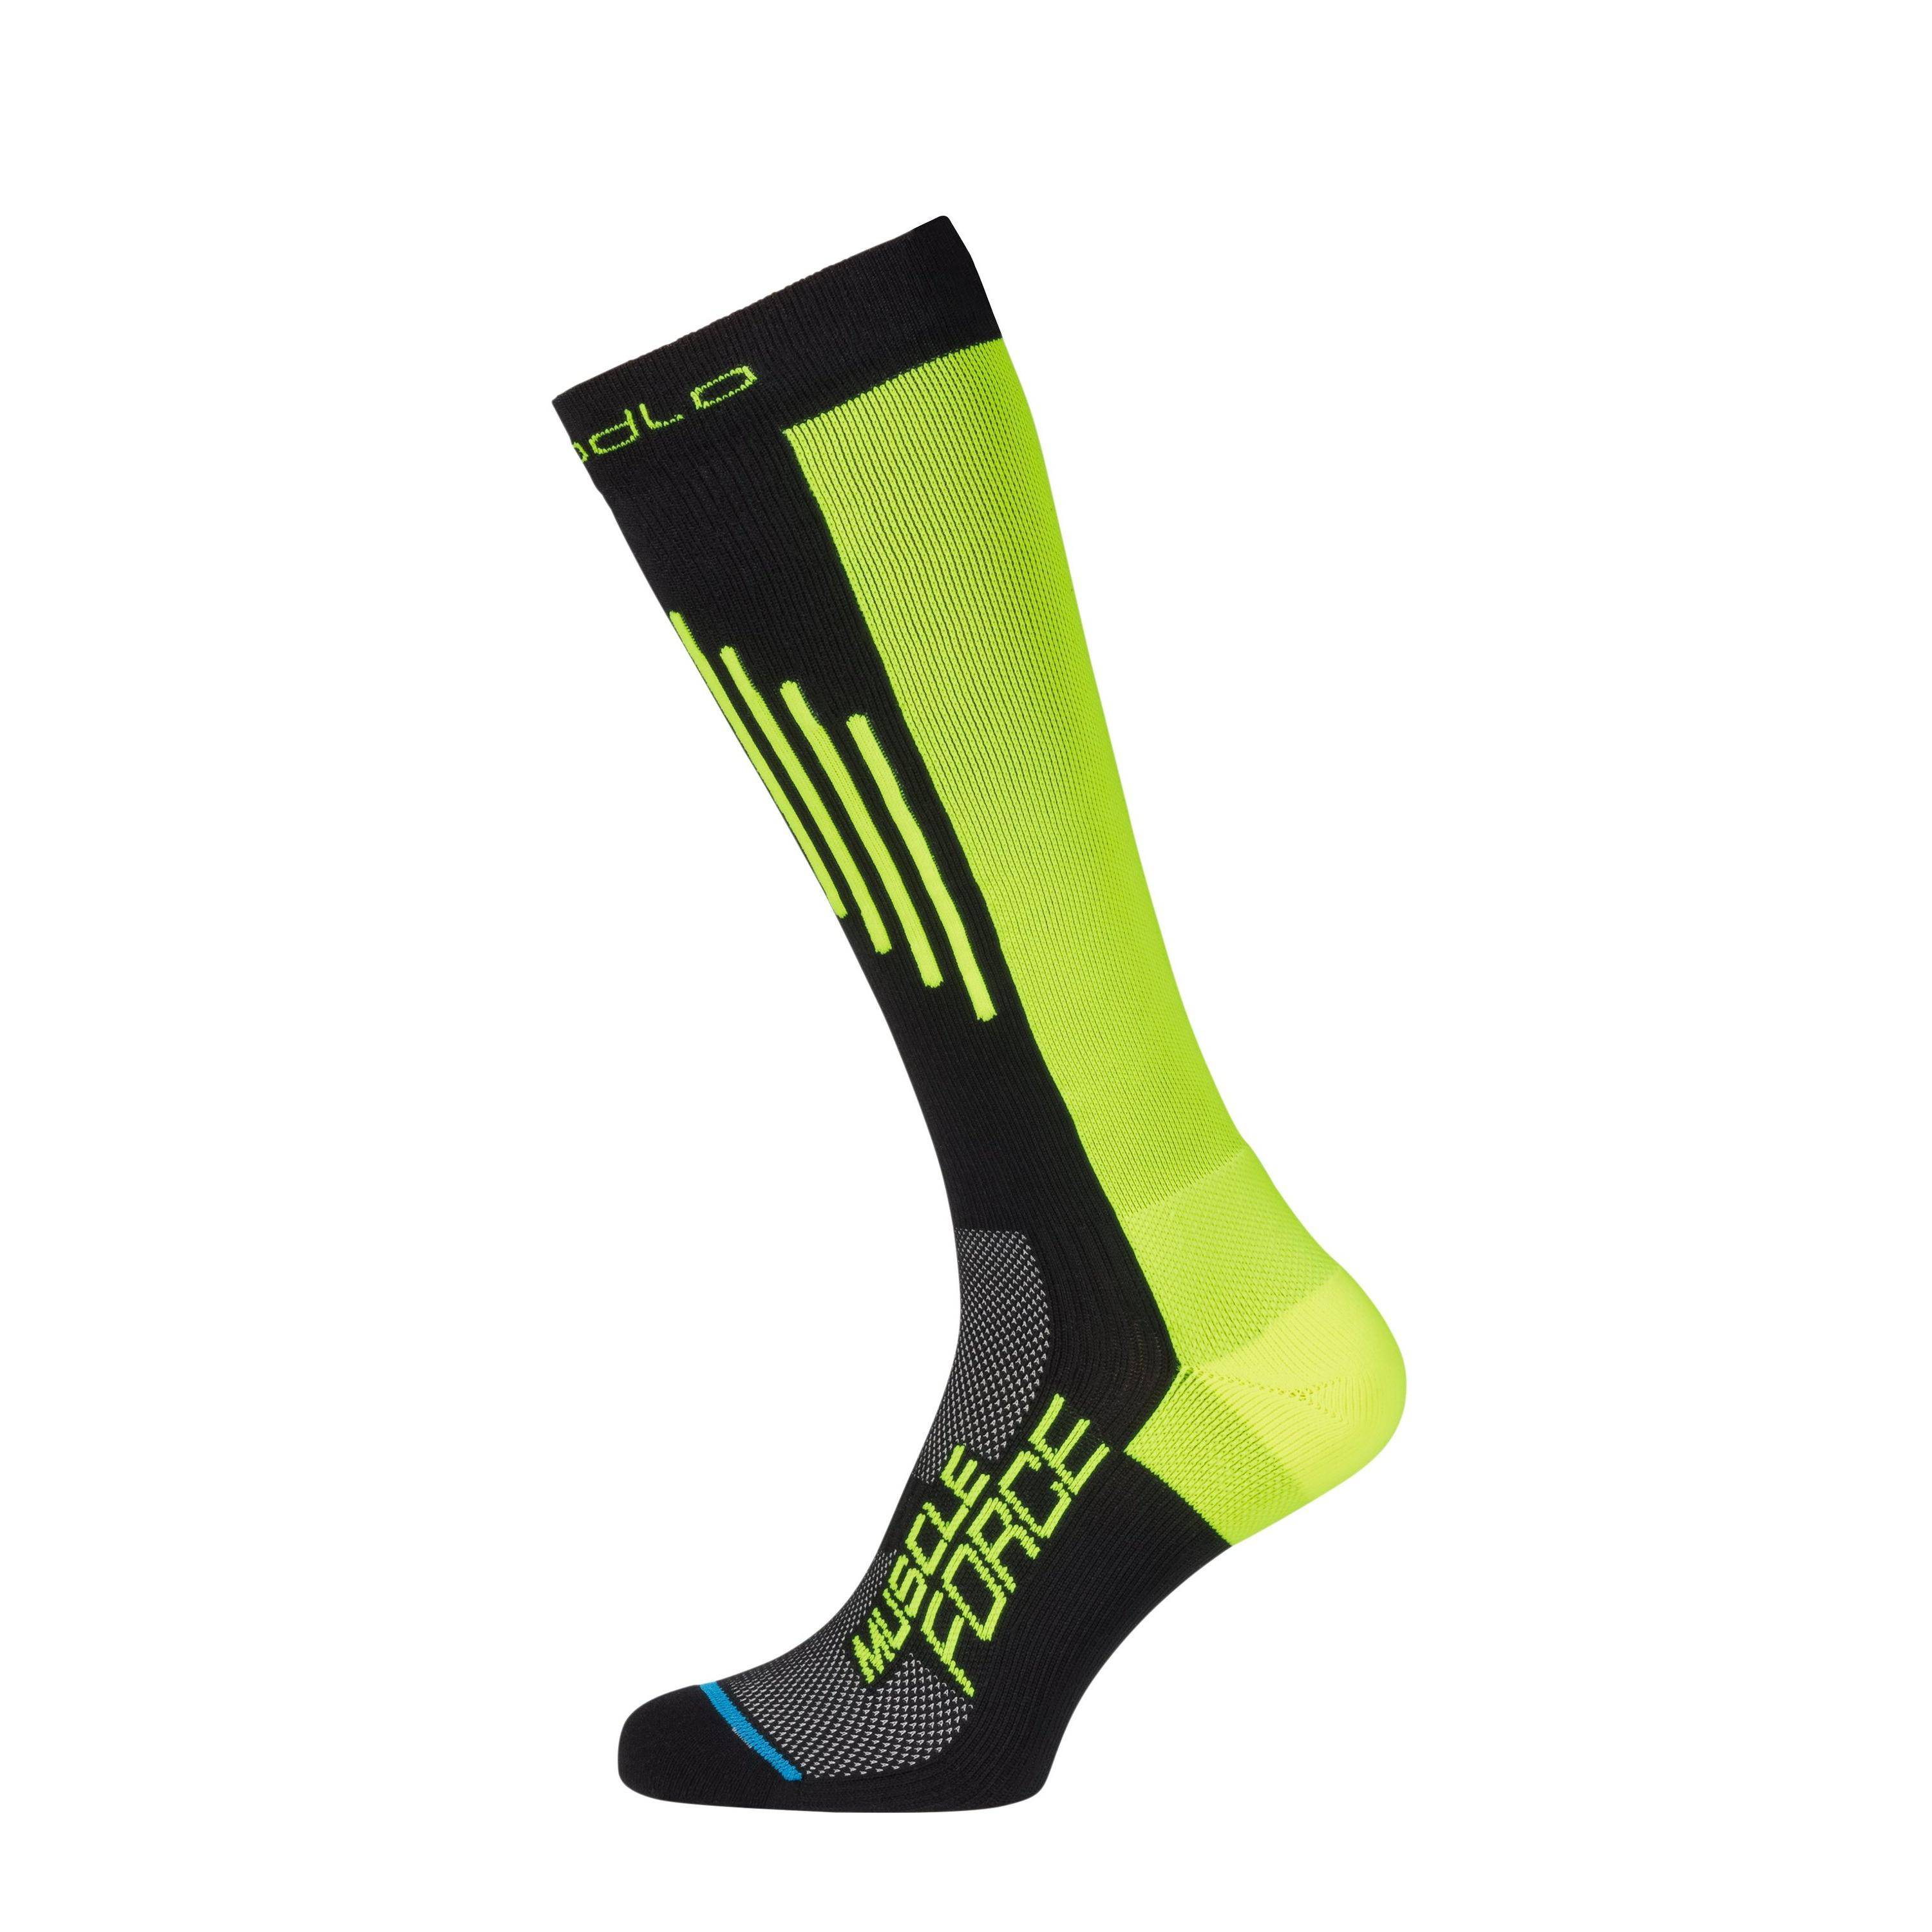 Odlo Chaussettes ultra-hautes MUSCLE FORCE LIGHT black - safety yellow taille: 45-47